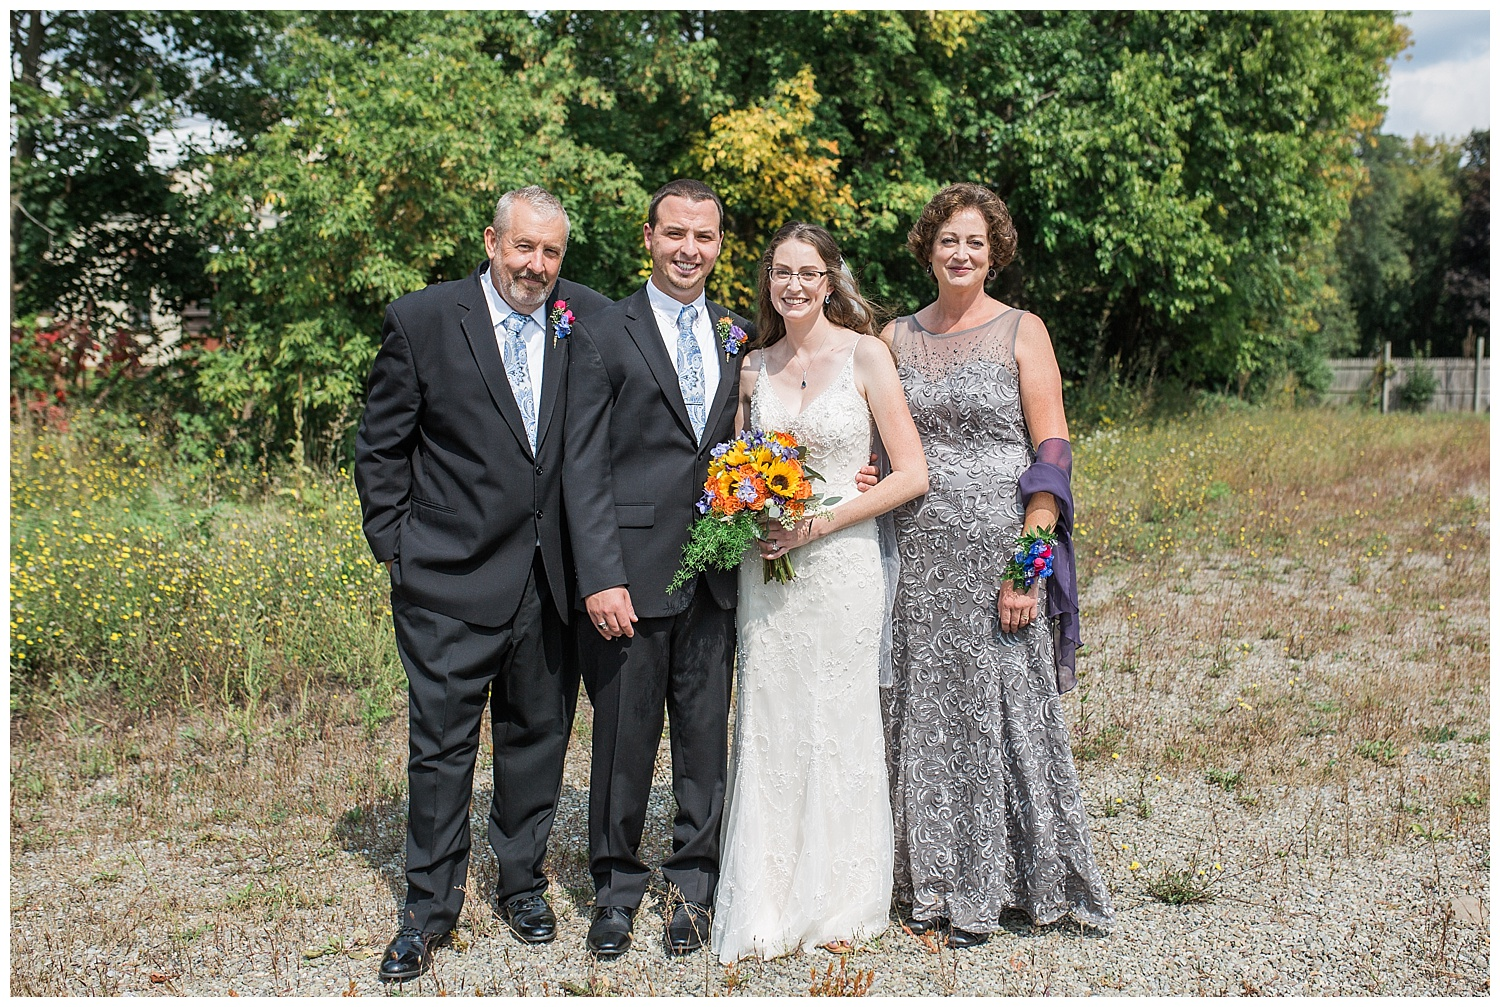 Chris and Leanne Hindle - Nugget Hill - Wayland NY - Lass and Beau-556_Buffalo wedding photography.jpg